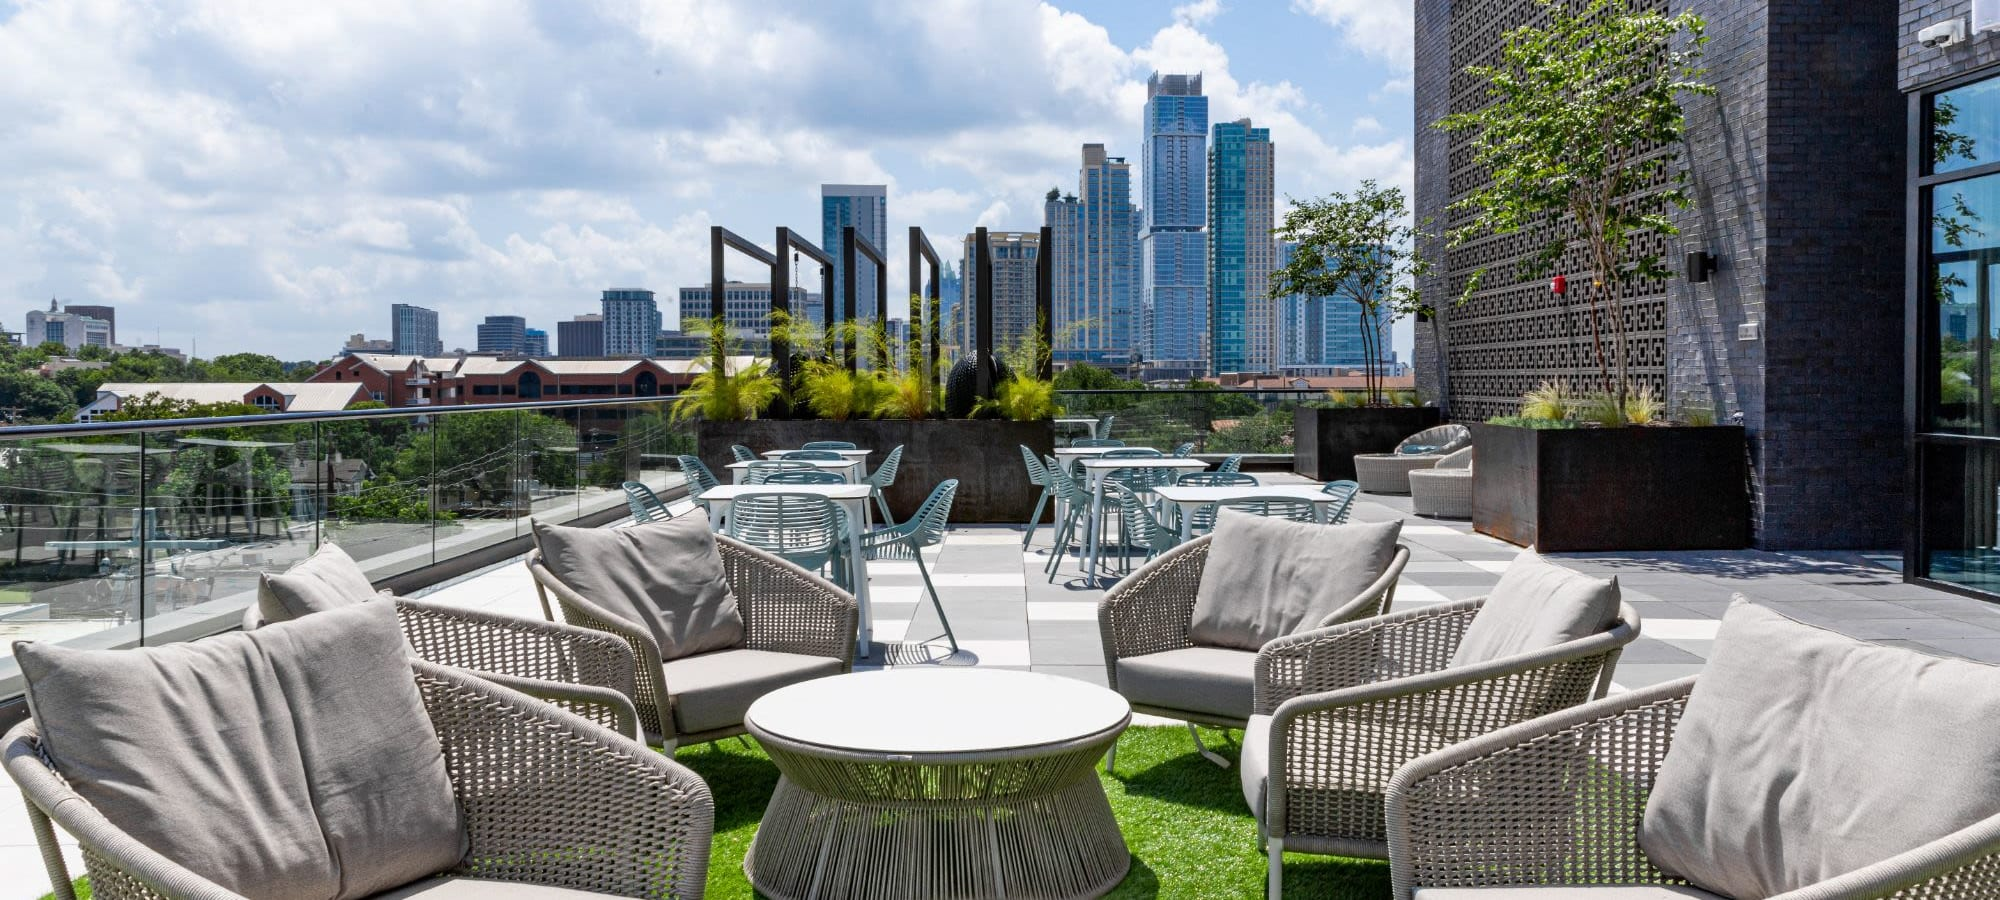 Schedule a tour of The Clark in Austin, Texas